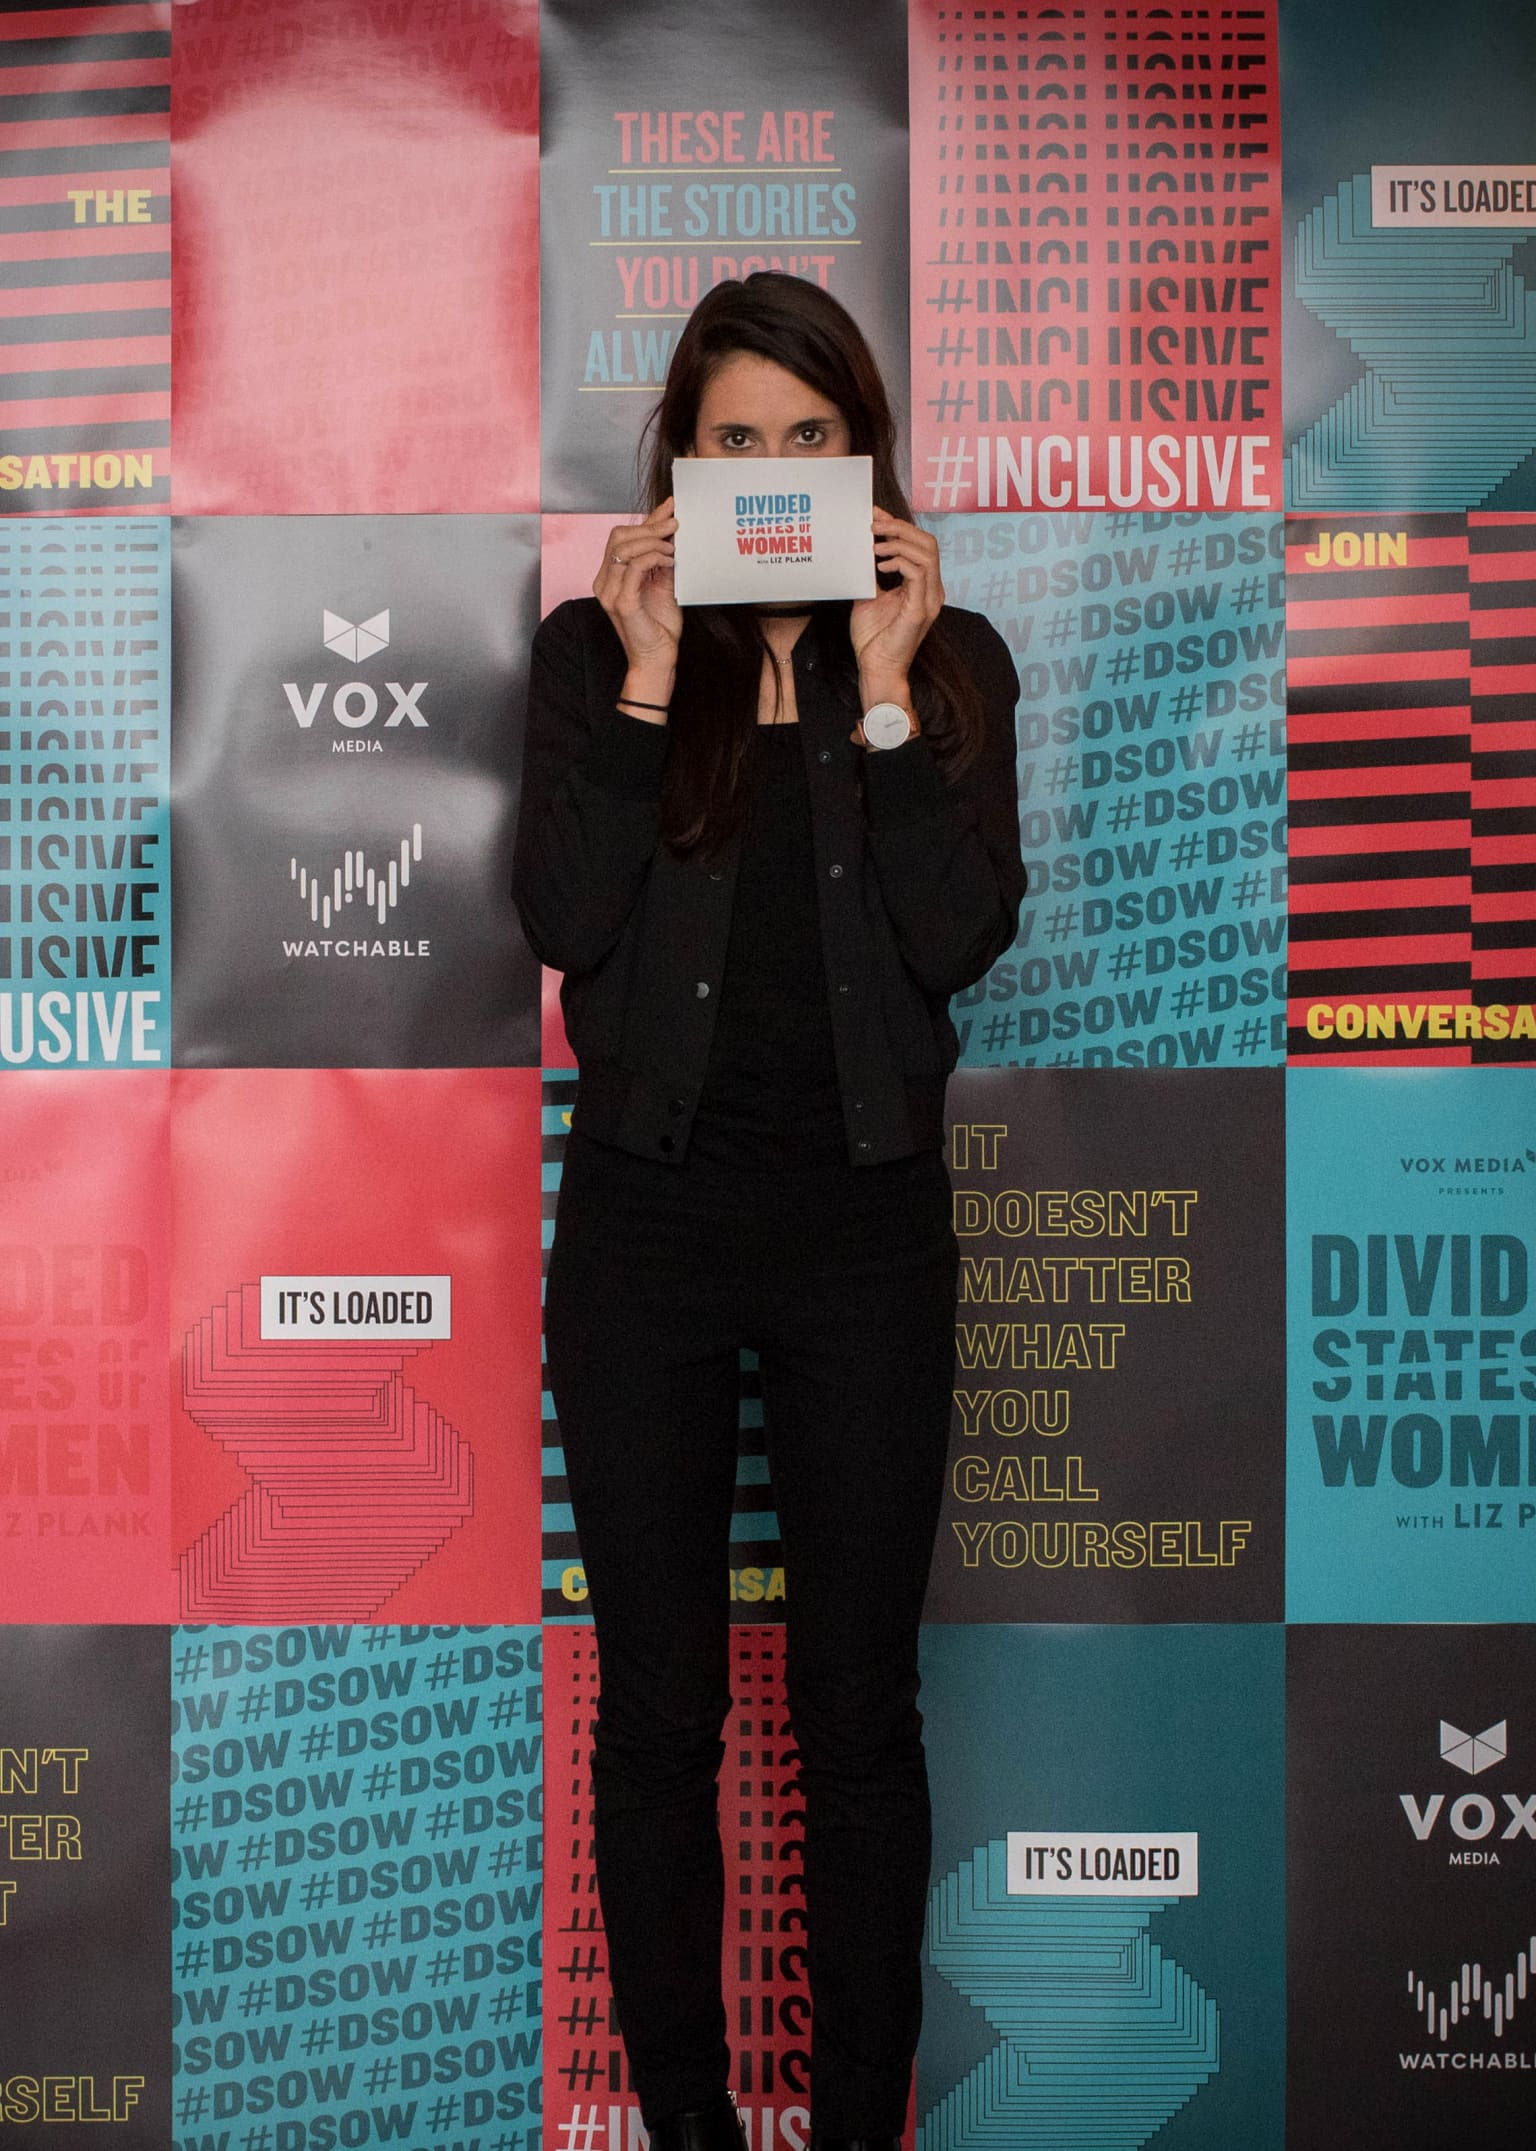 Divided States of Women Launch